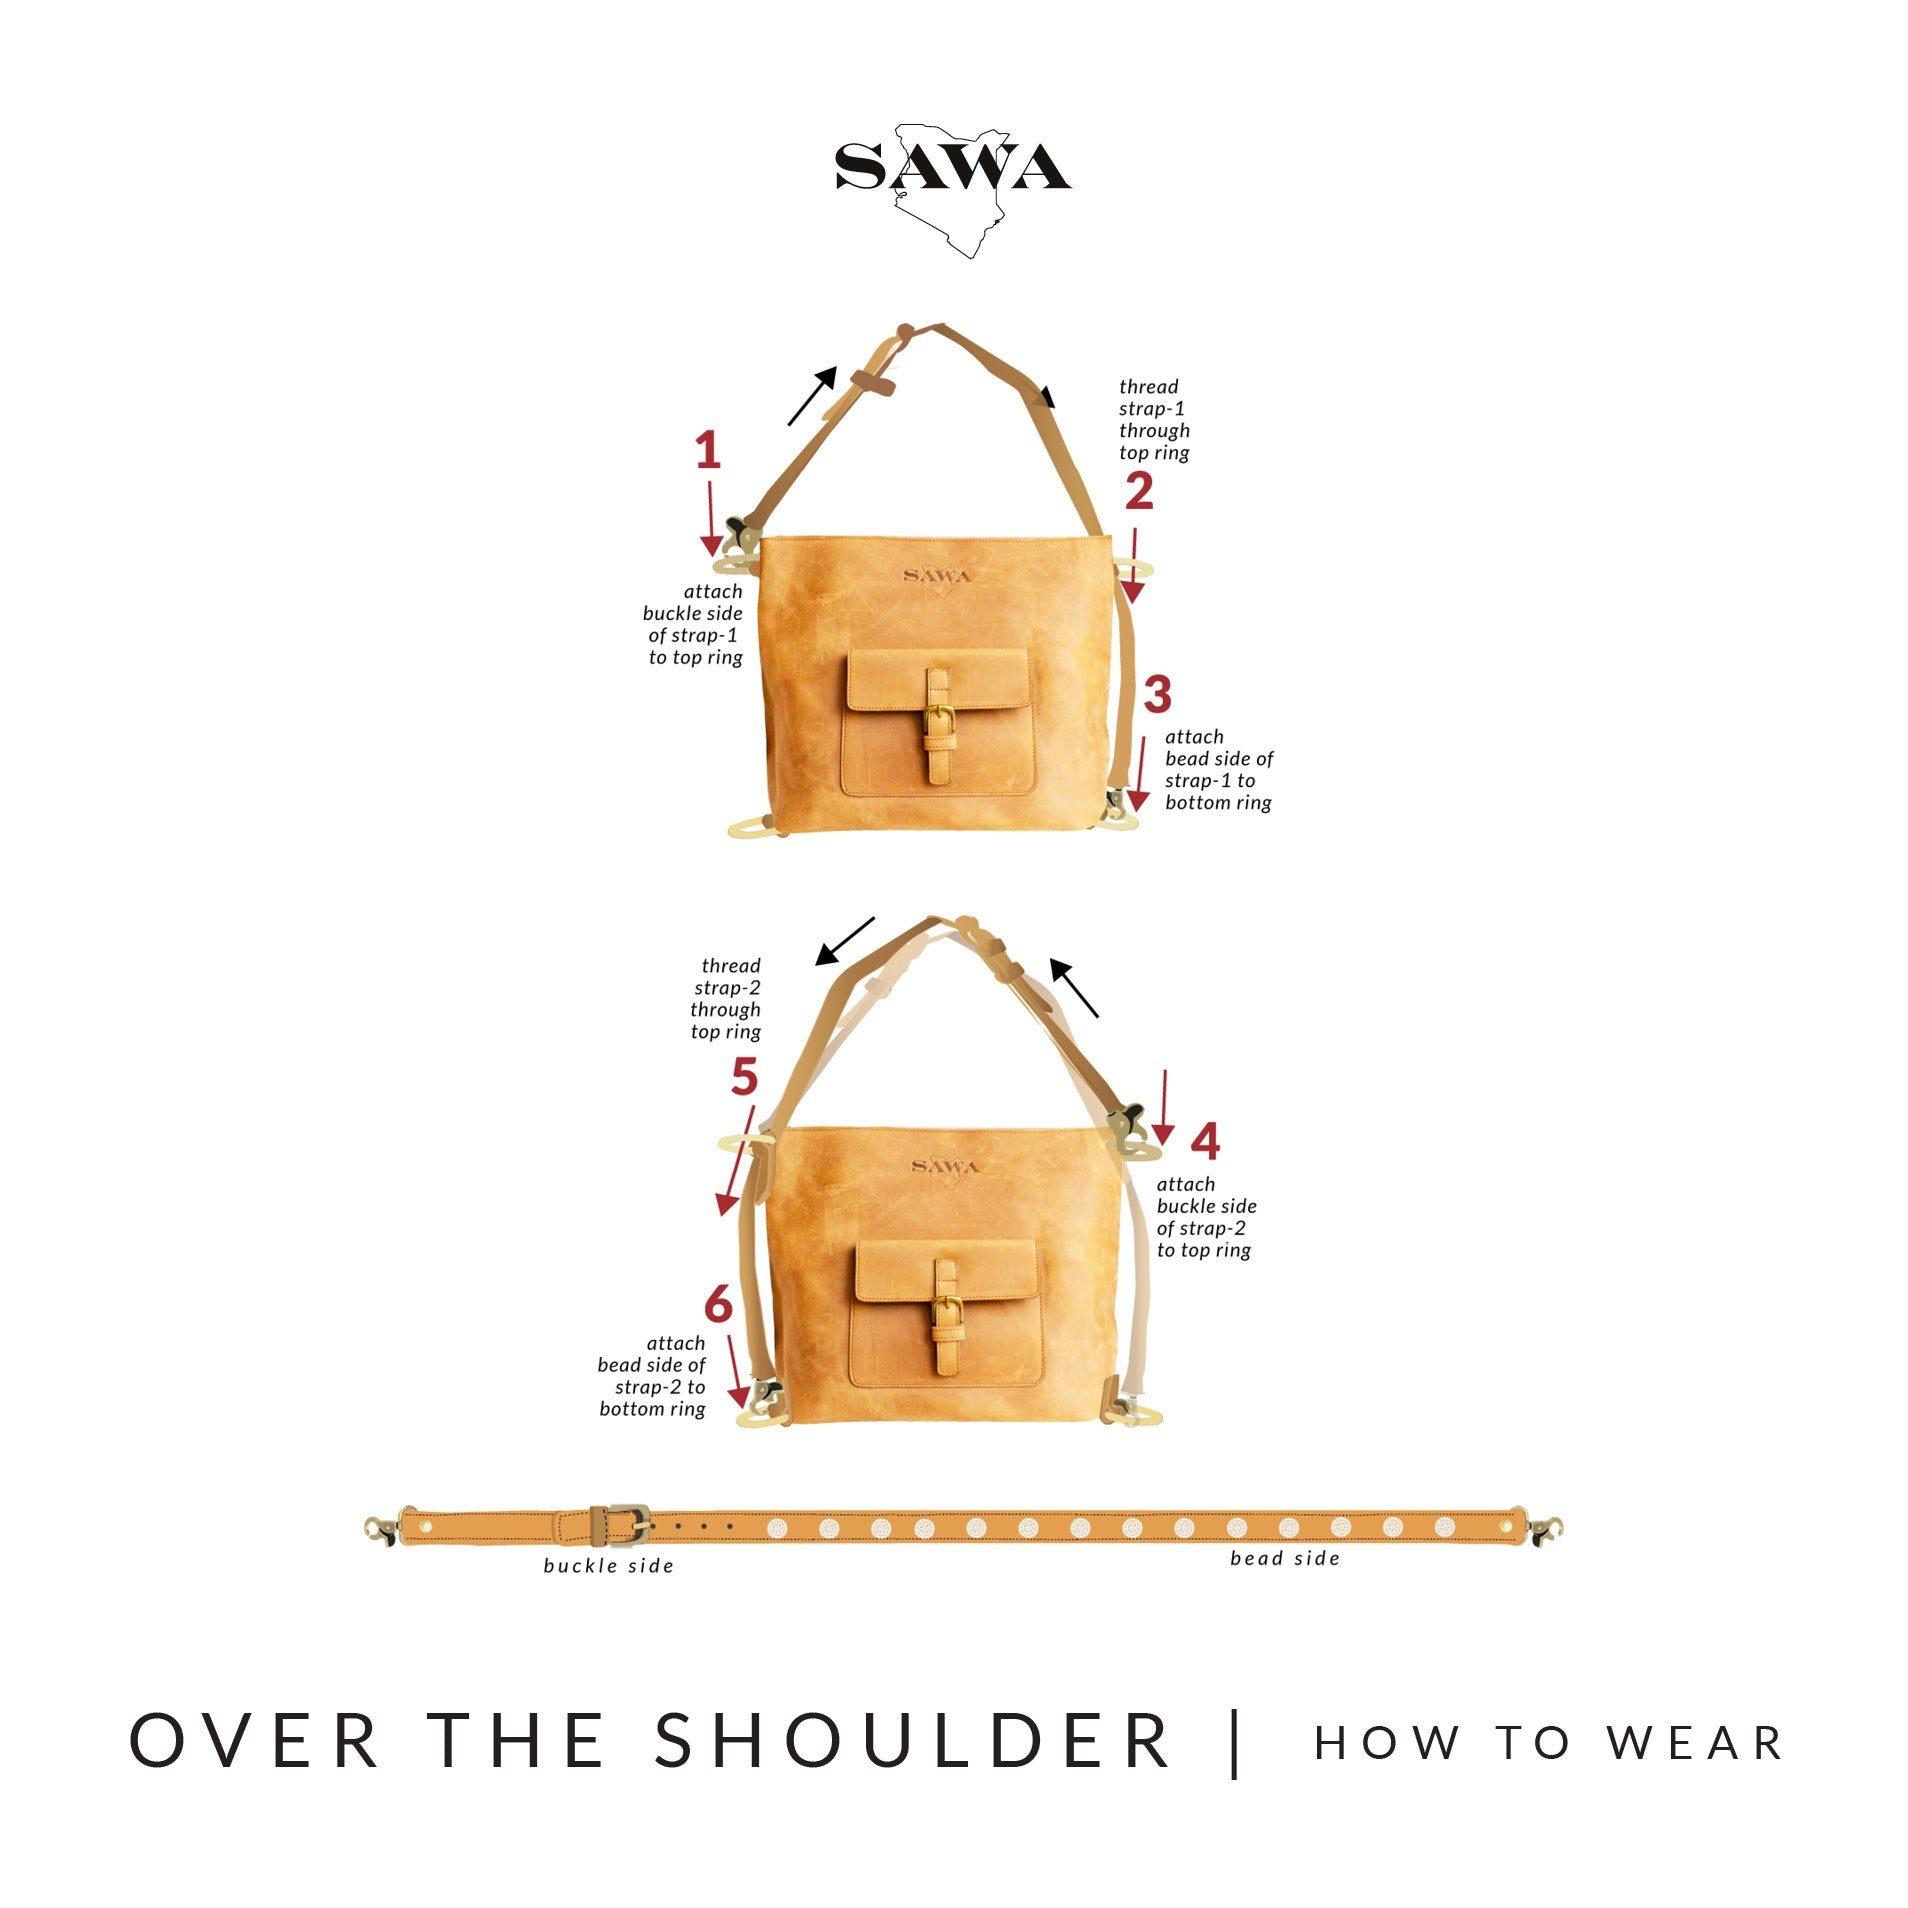 Over The Shoulder / Handbag Instructions